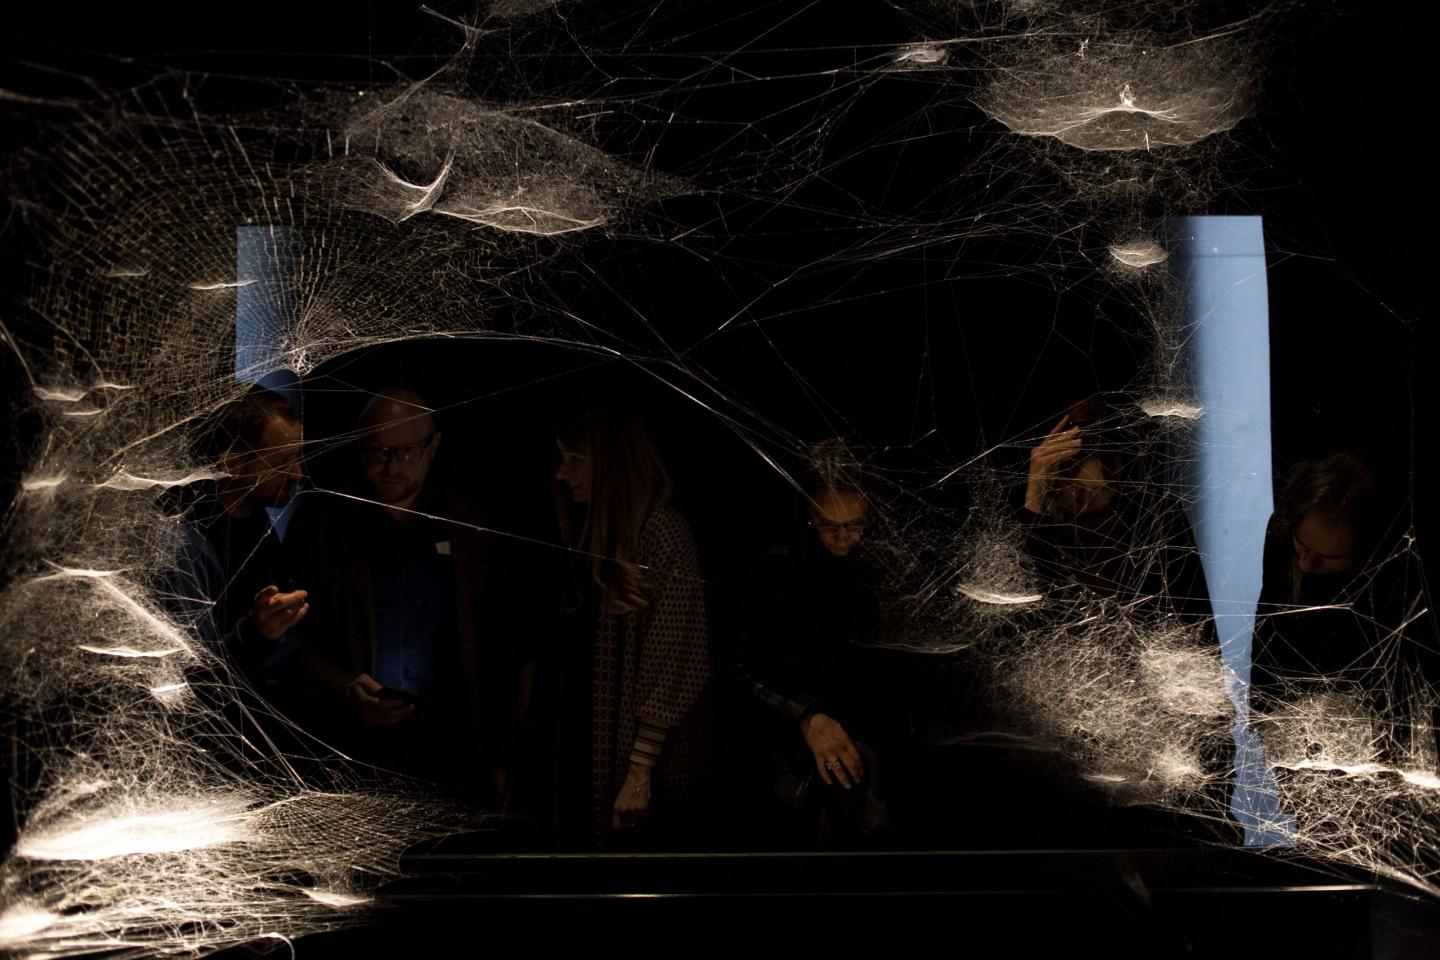 Tomás Saraceno, Spider/Web Pavilion 7: Oracle Readings, Weaving Arachnomancy, Synanthropic Futures: At-ten(t)sion to invertebrate rights!, 2019. Mixed media. © Francesco Galli. Courtesy: La Biennale di Venezia